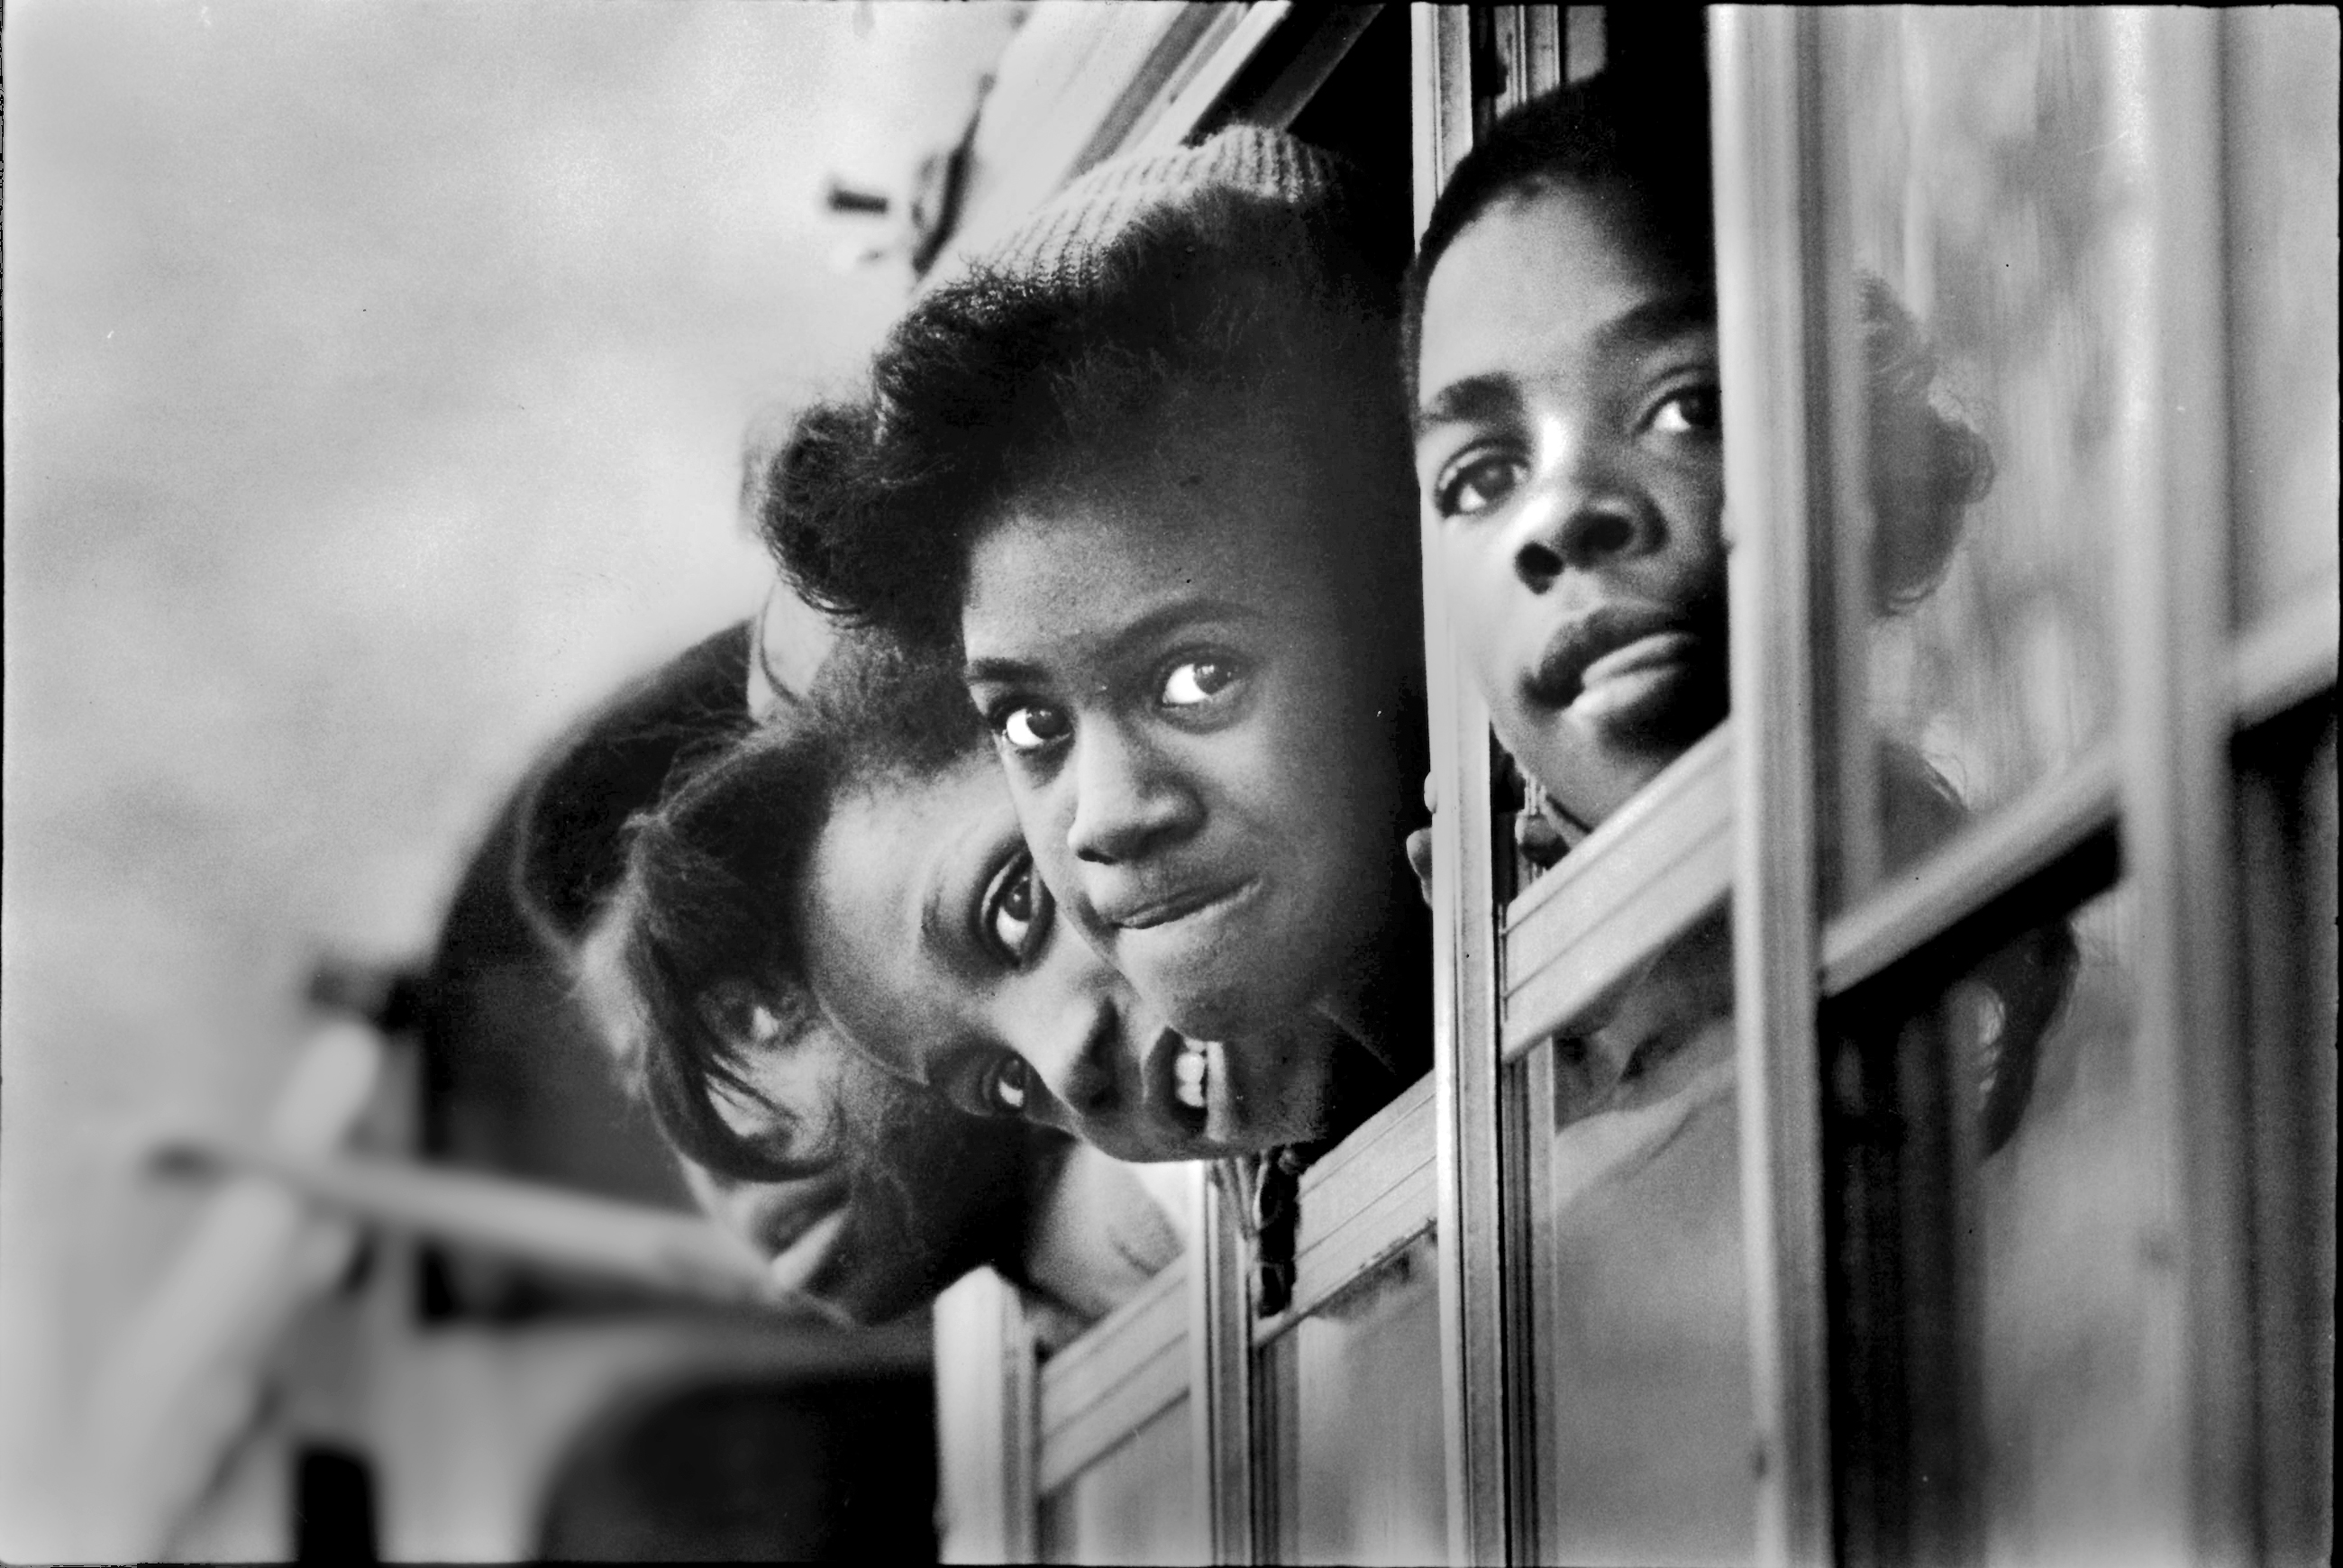 Edgewood Middle School students lean out of bus windows on Jan. 7, 1982. Edgewood schools were among those dissolved and integrated into the Woodland Hills School District. (Photo by Pittsburgh Press. Reprinted with permission from the Pittsburgh Post-Gazette.)